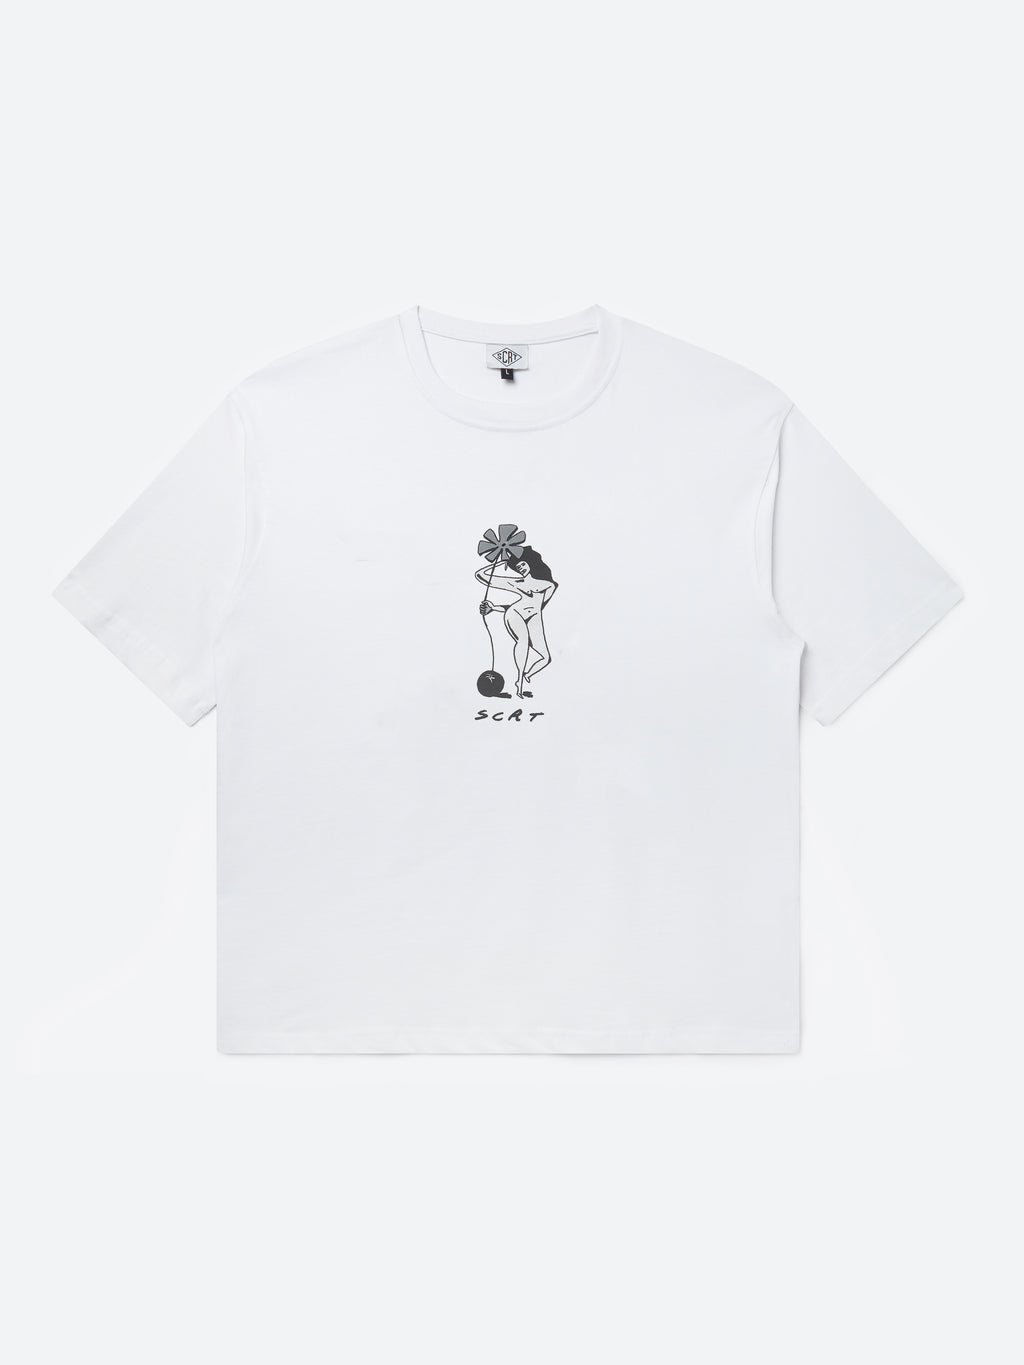 Utopia T-Shirt - White